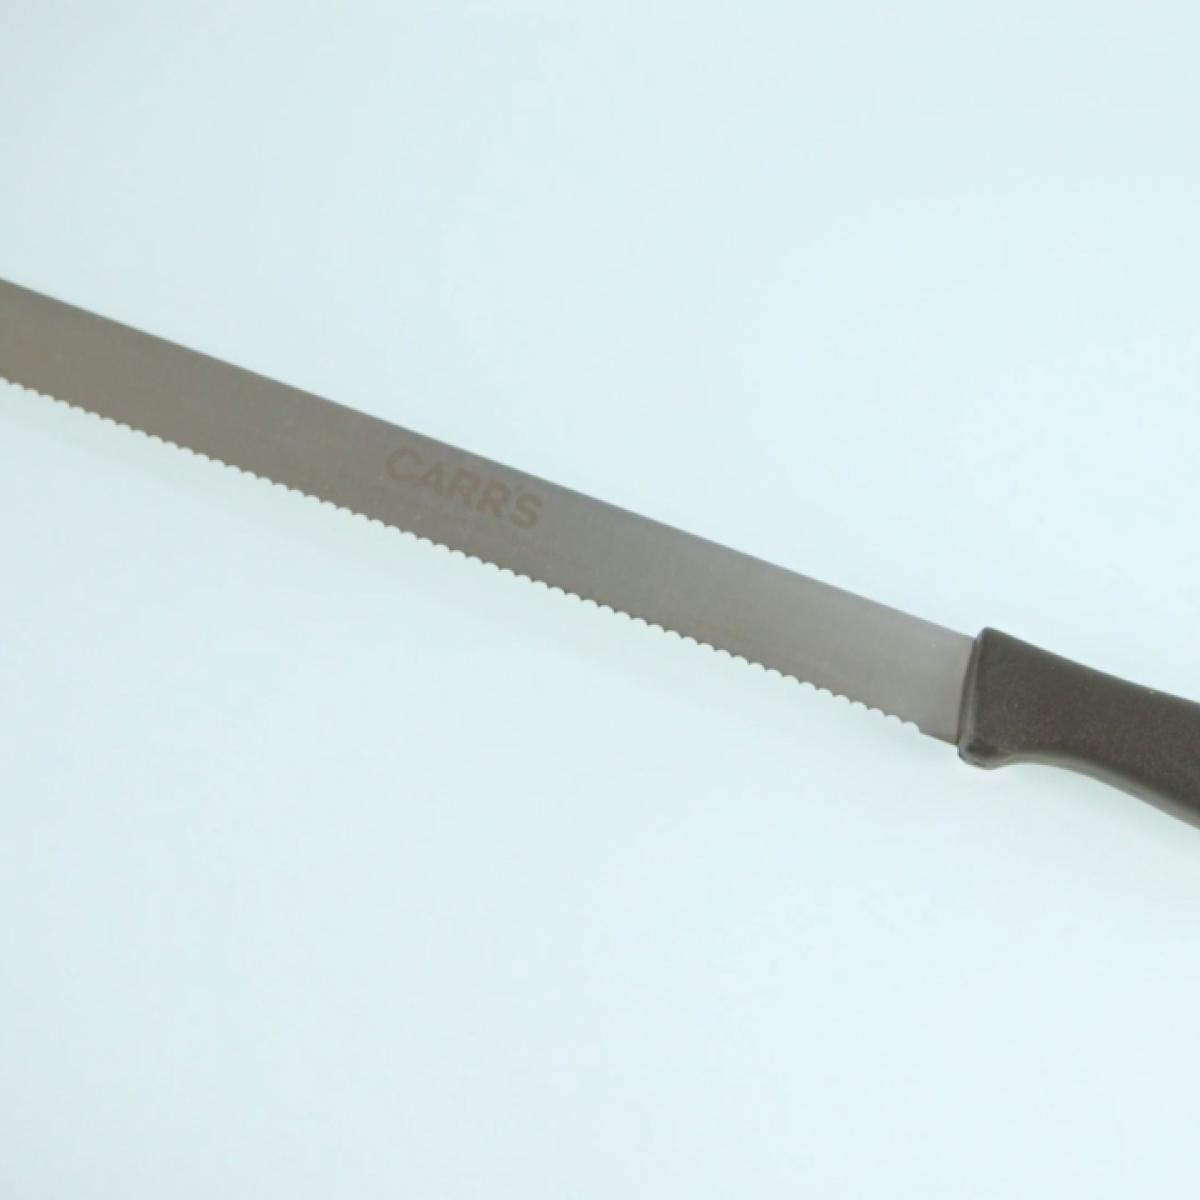 Equipment bread knife